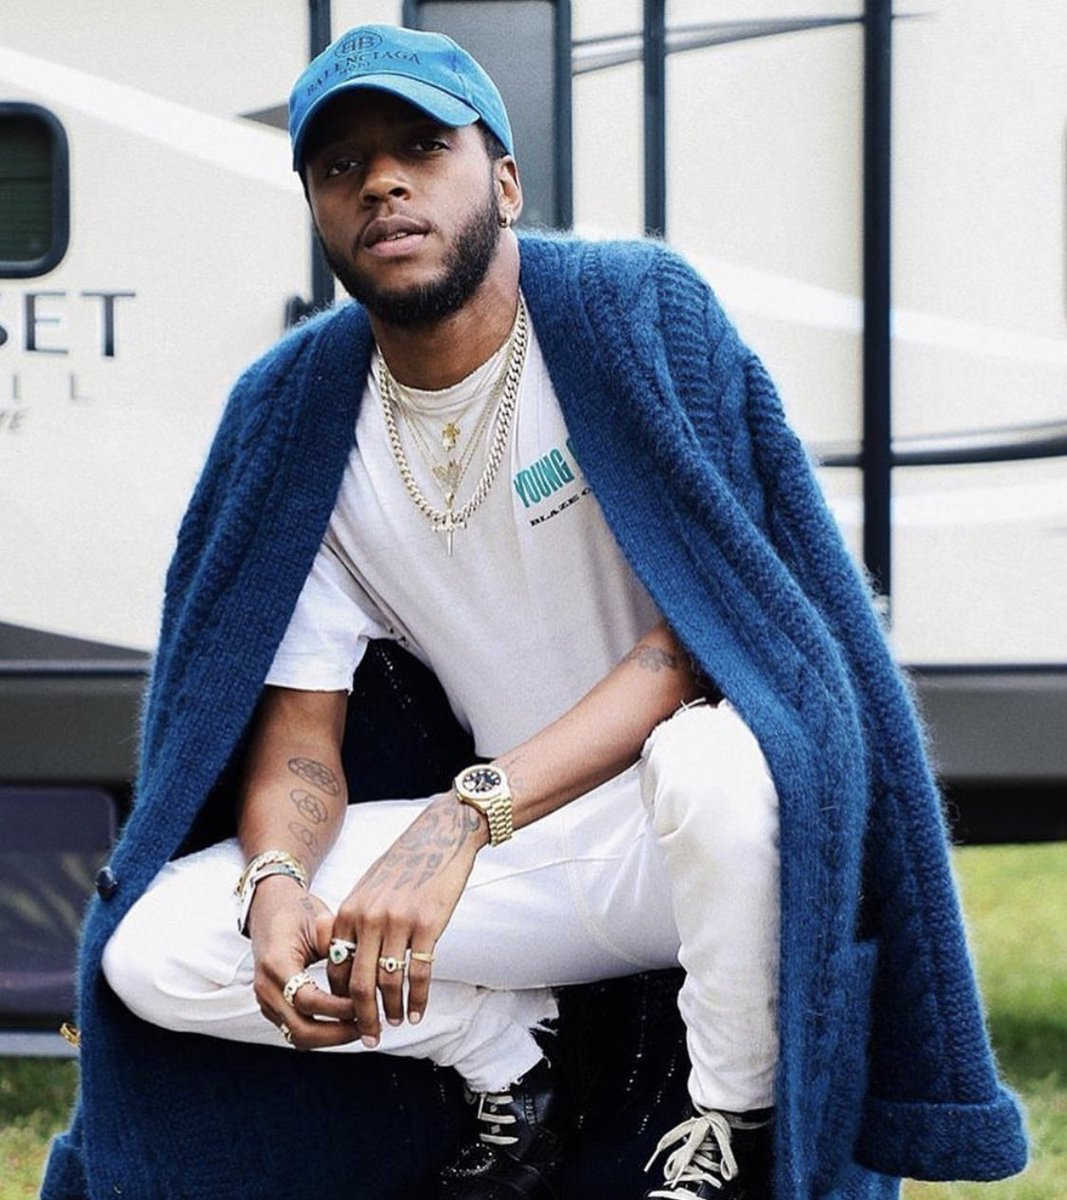 Happy Birthday @6LACK 🎉 May your light shine brighter ✨ We appreciate you 👑